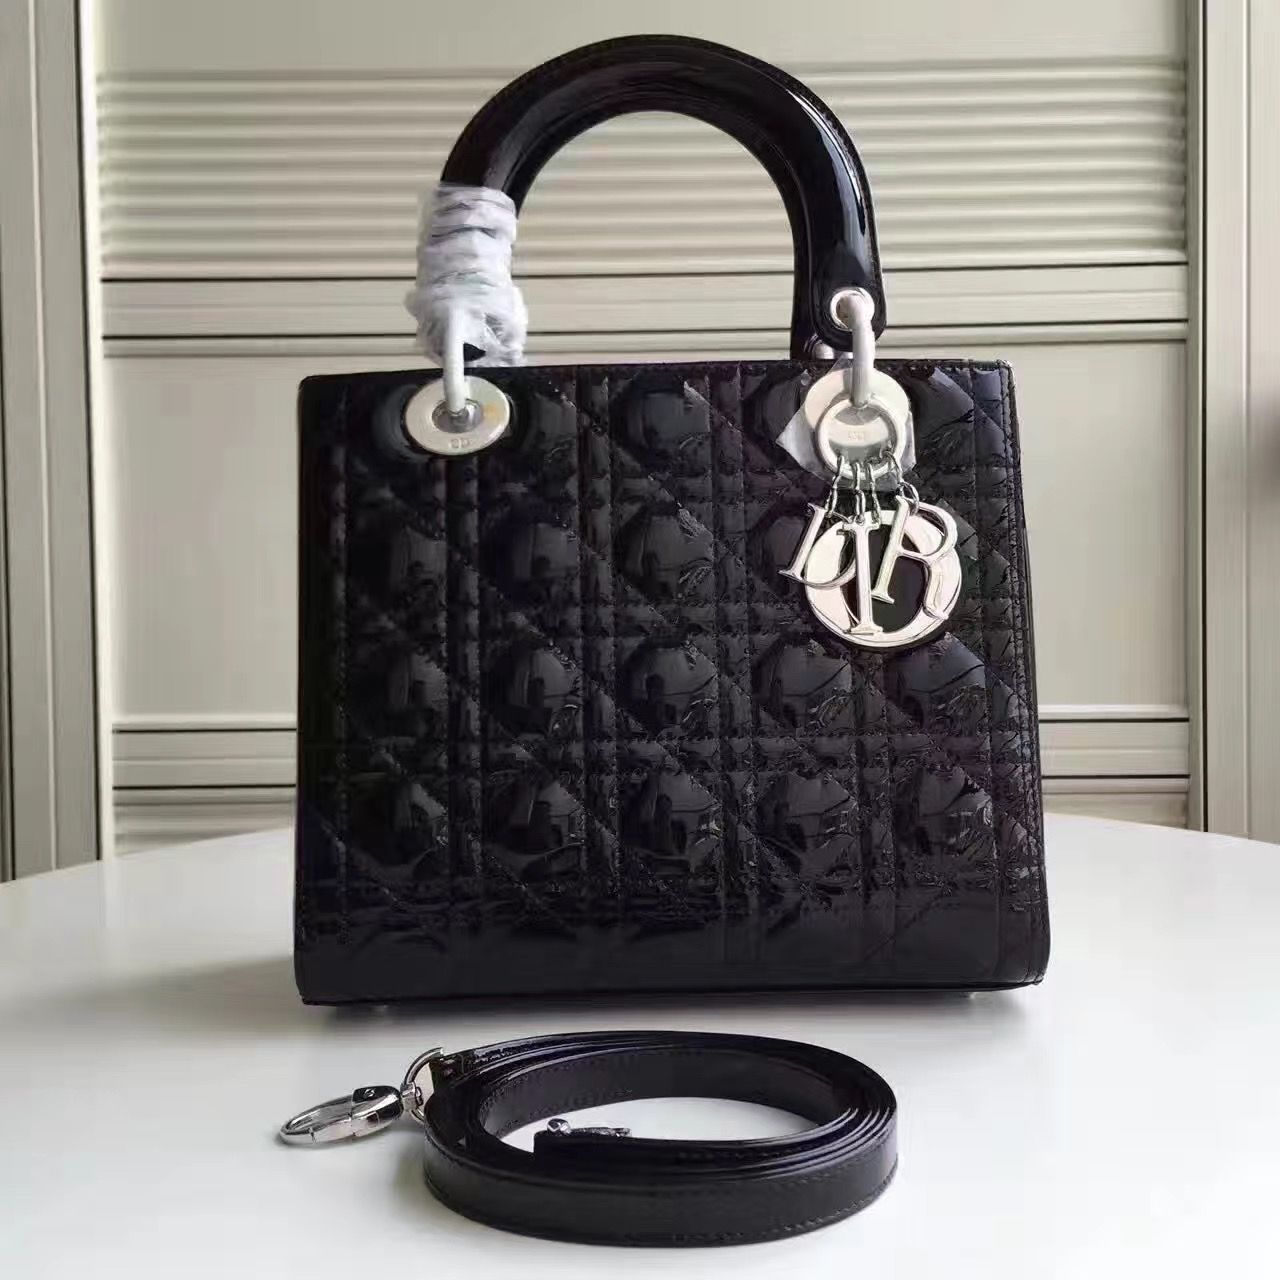 Dior Lady Dior Medium Patent Leather Bag in Black(Silver Hardware ... a4ceb4f23a3bd